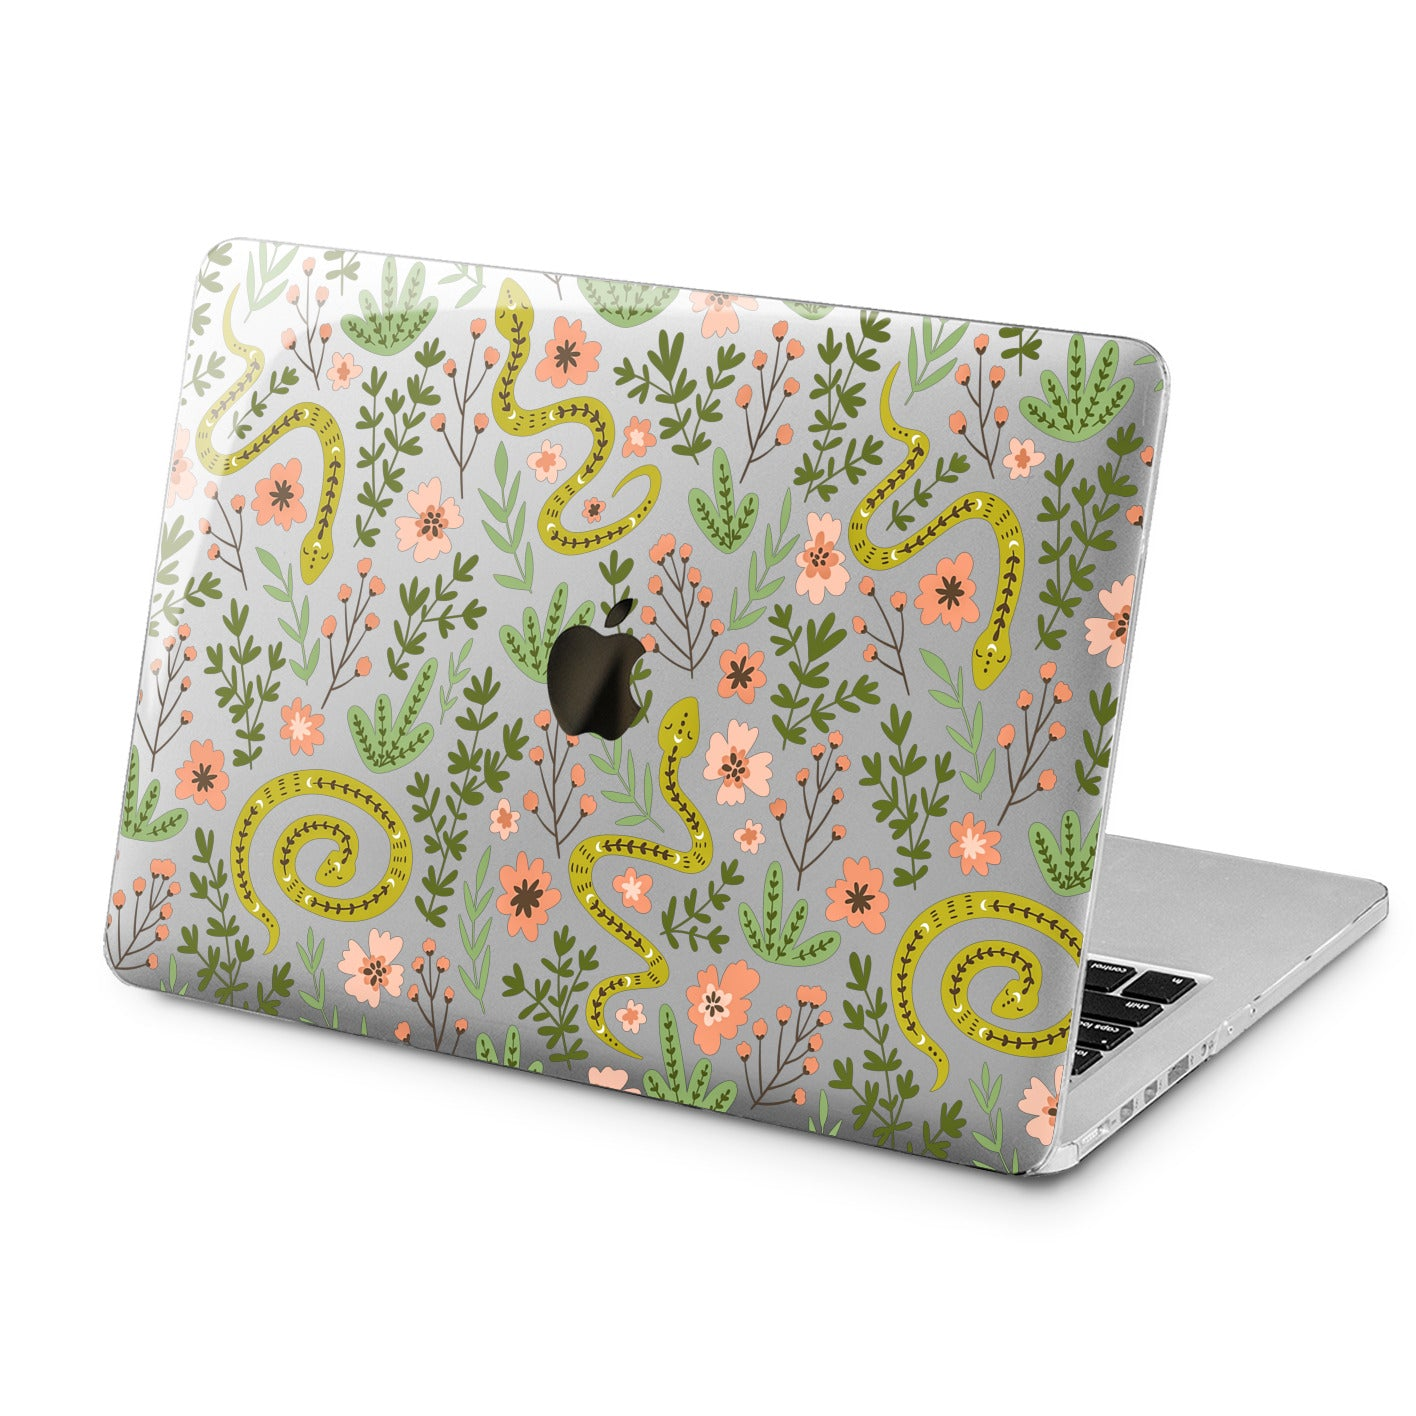 Lex Altern Lex Altern Cute Snakes Case for your Laptop Apple Macbook.